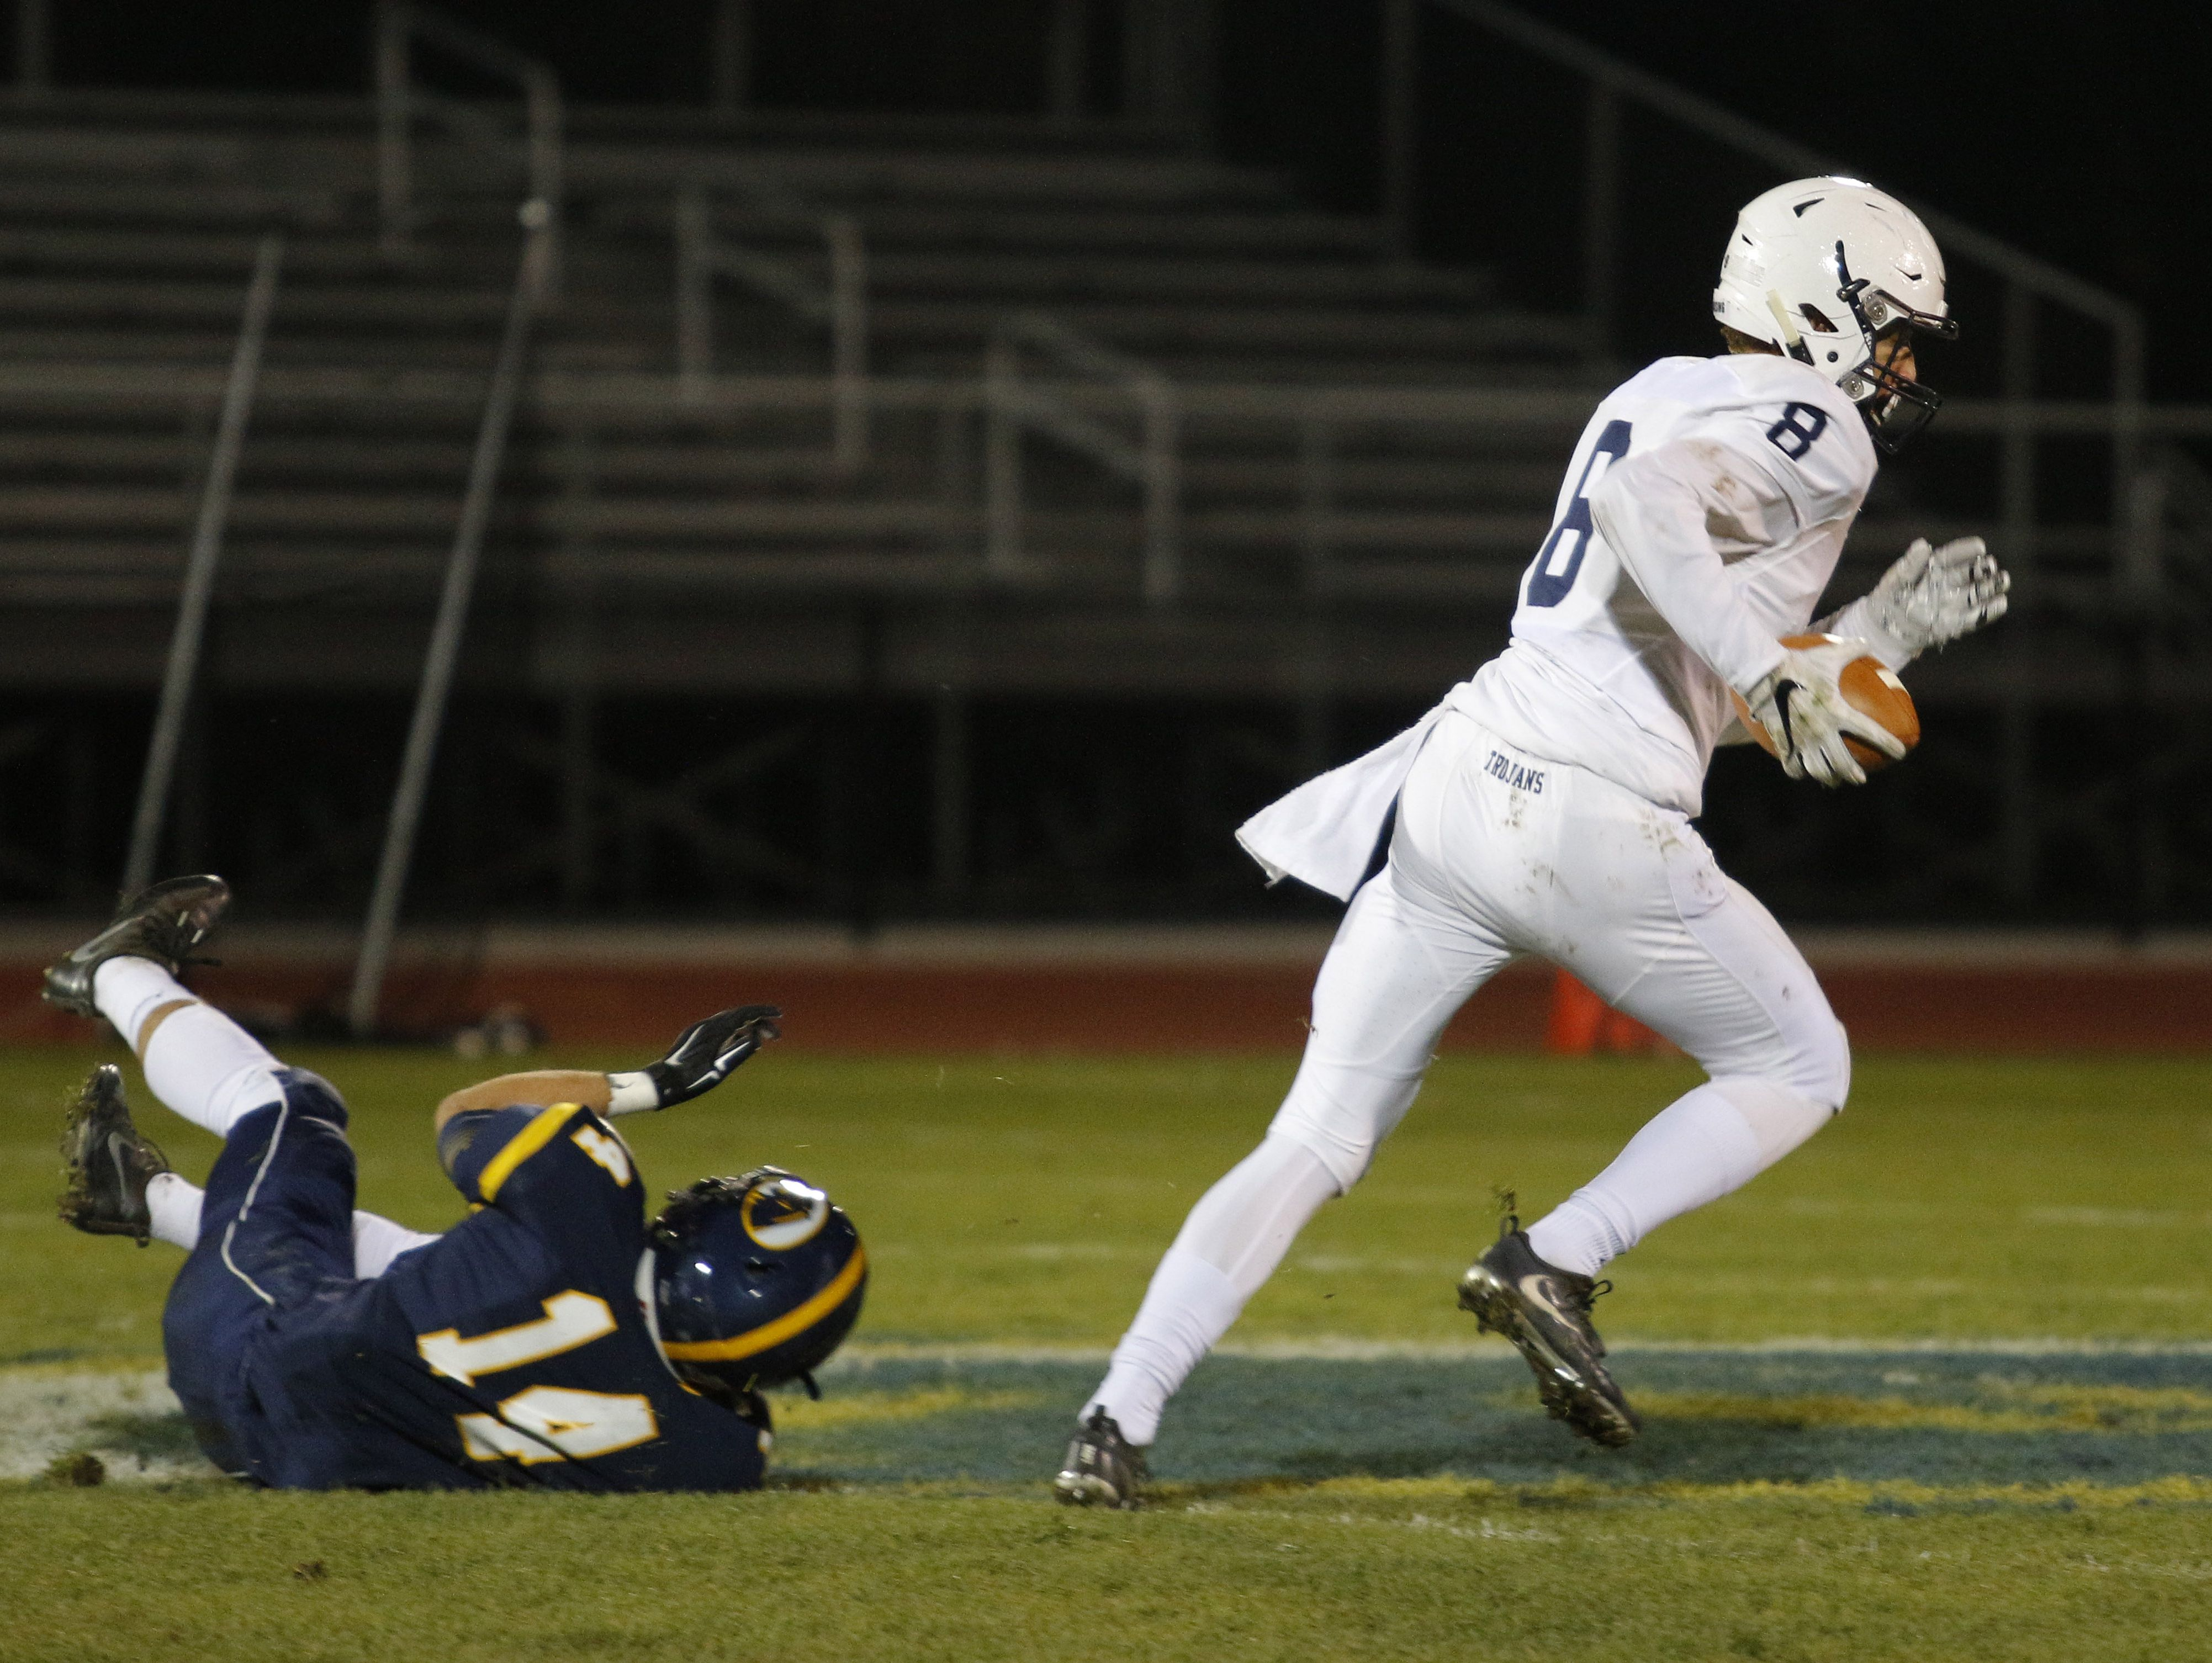 East Lansing's Blake Underwood, right, escapes from DeWitt's Alan Smith (14) on a long touchdown reception Friday, Oct. 28, 2016, in DeWitt, Mich.